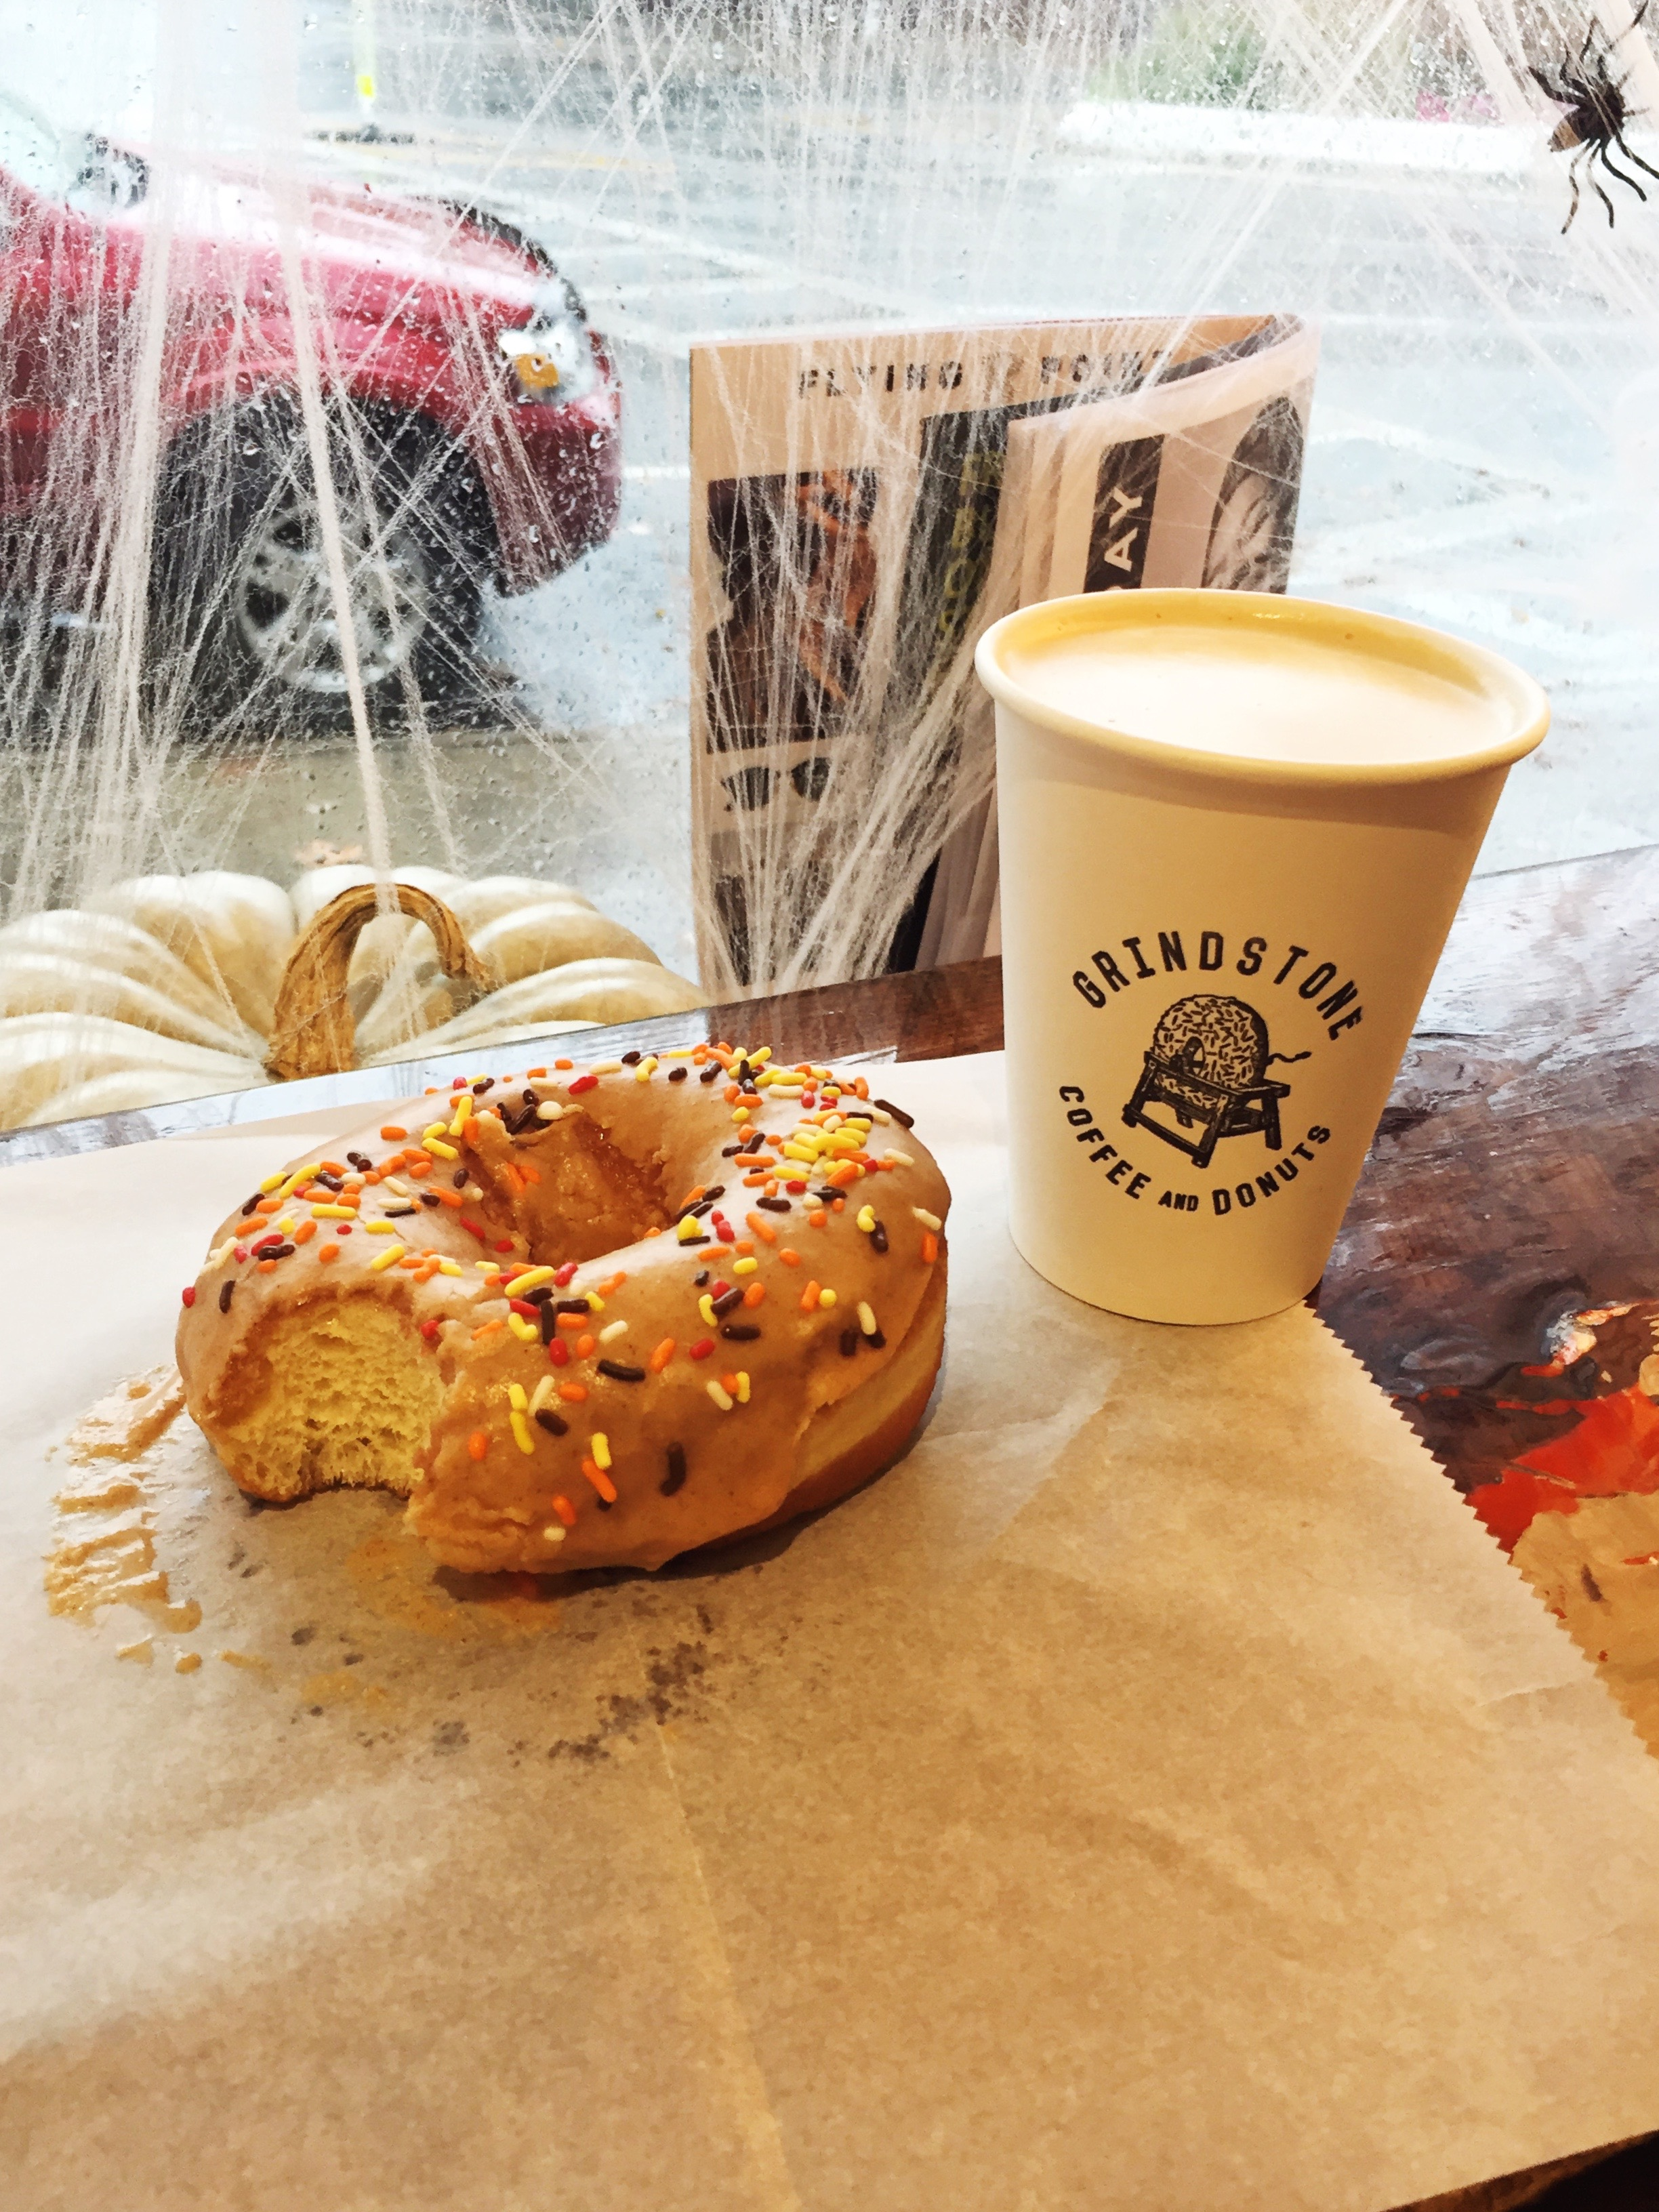 My pumpkin spiced donut from Grindstone